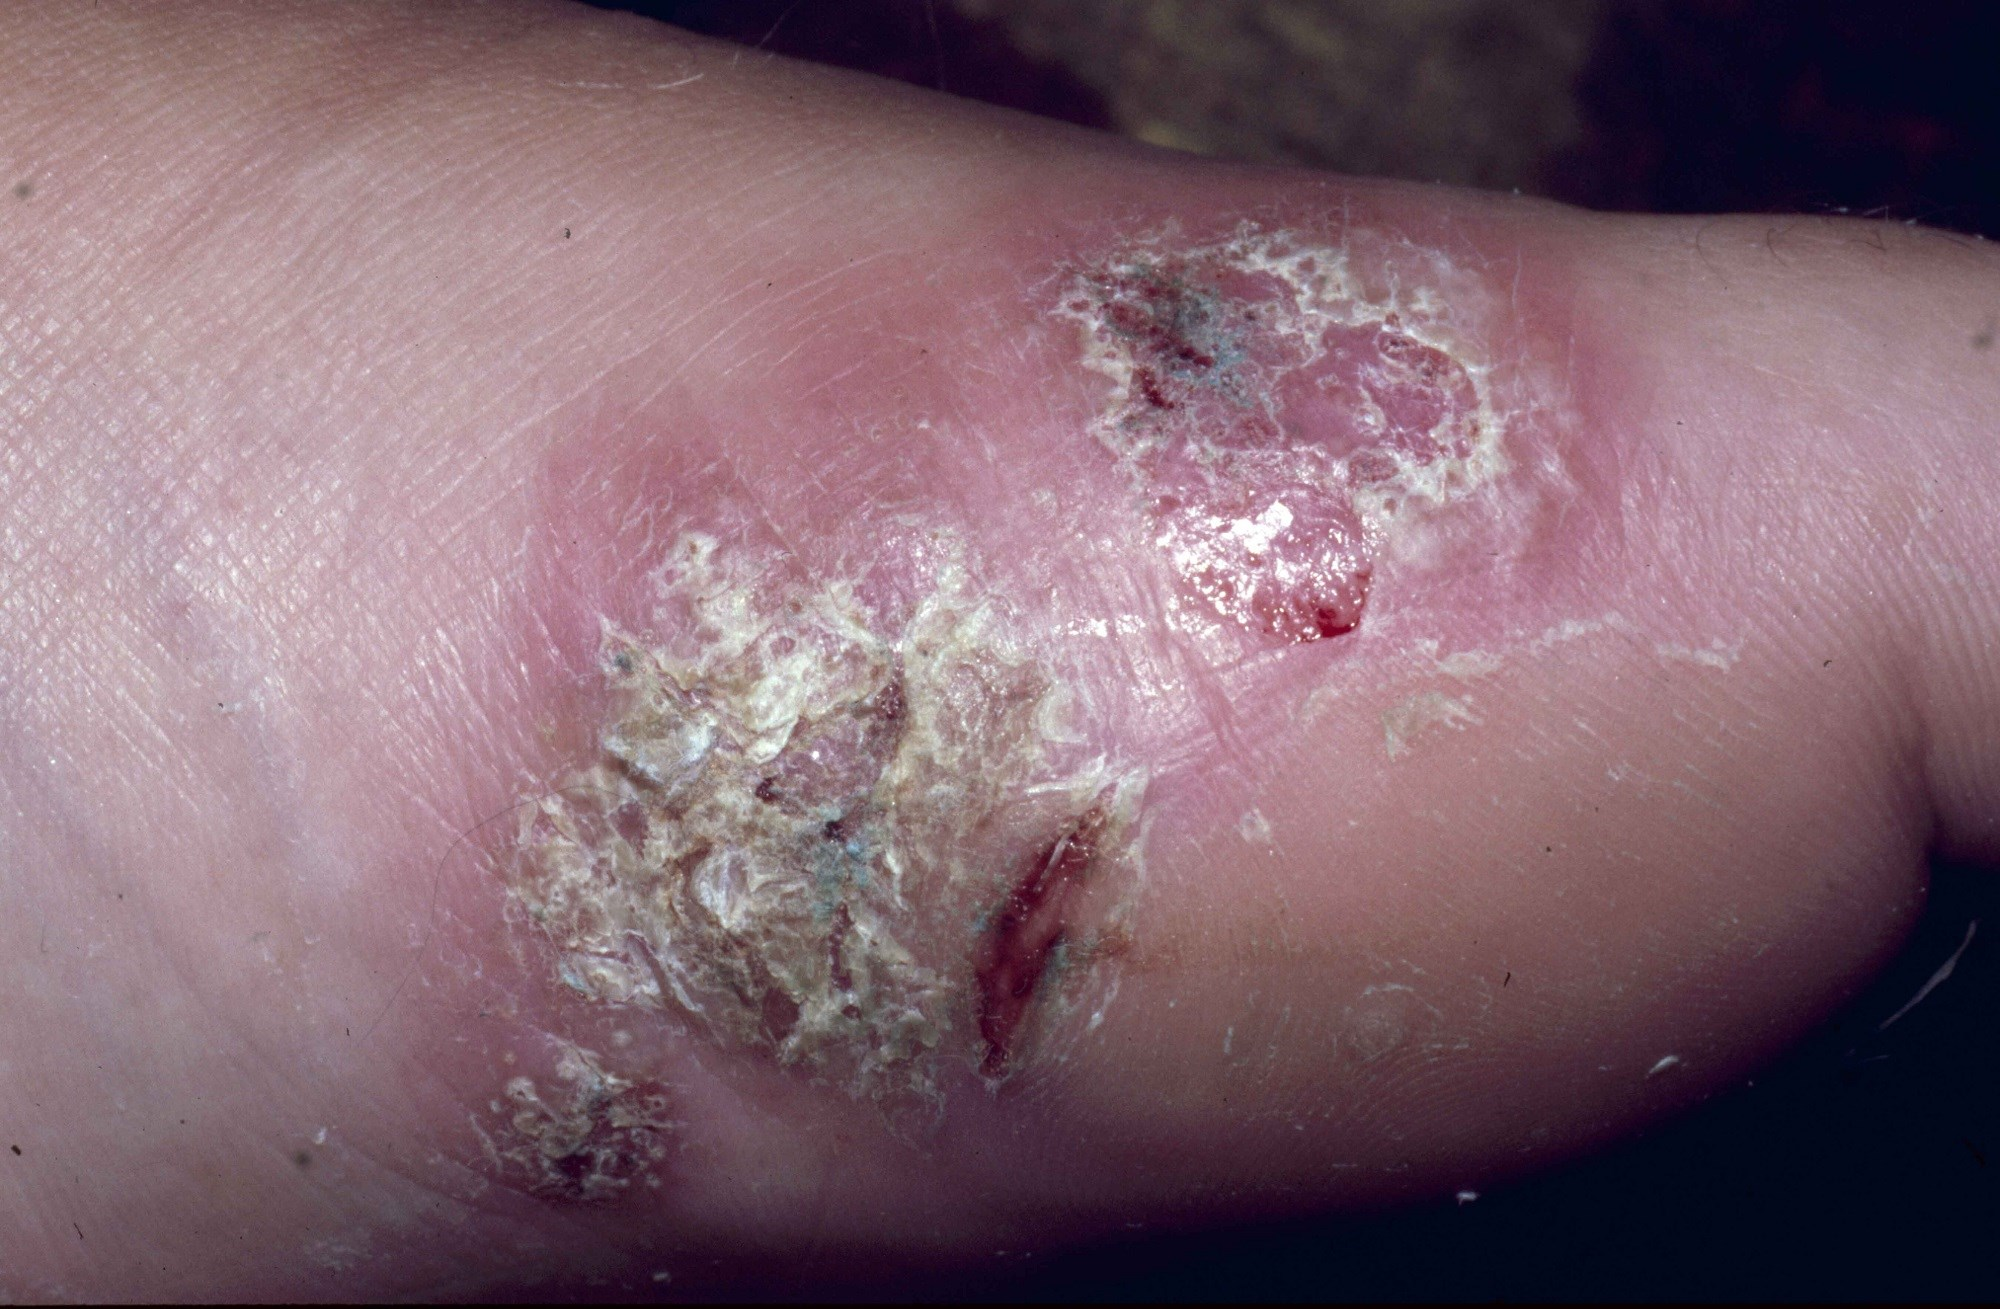 More research is needed to better understand the pathophysiologic mechanisms that result in increased risk for infection among individuals with psoriasis.